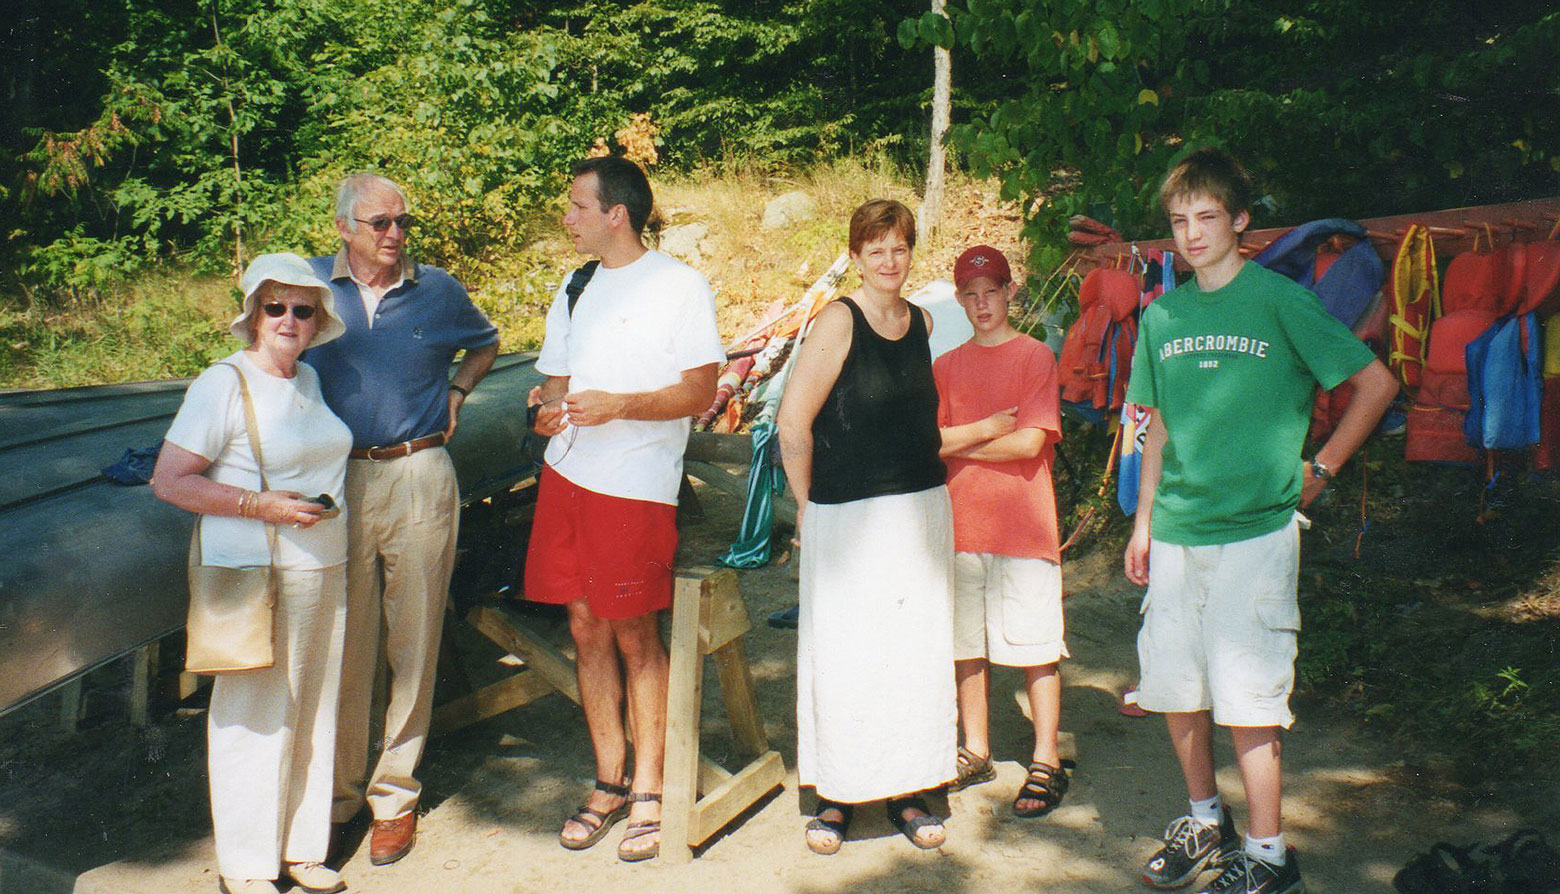 Stewart/Goodfellow Family with Robin